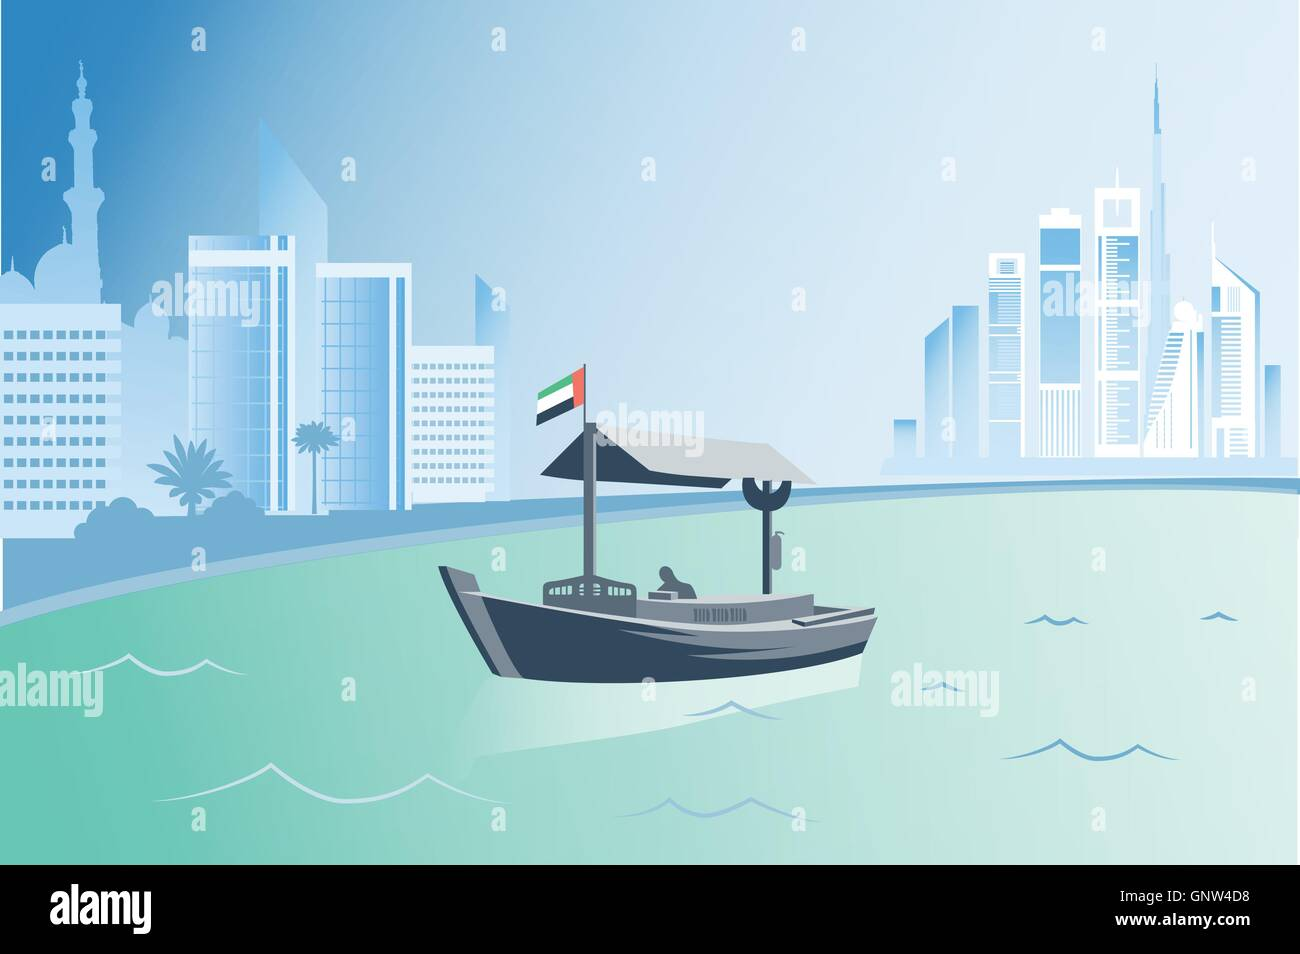 Dubai traditional abra boat on the city background vector illustration - Stock Vector